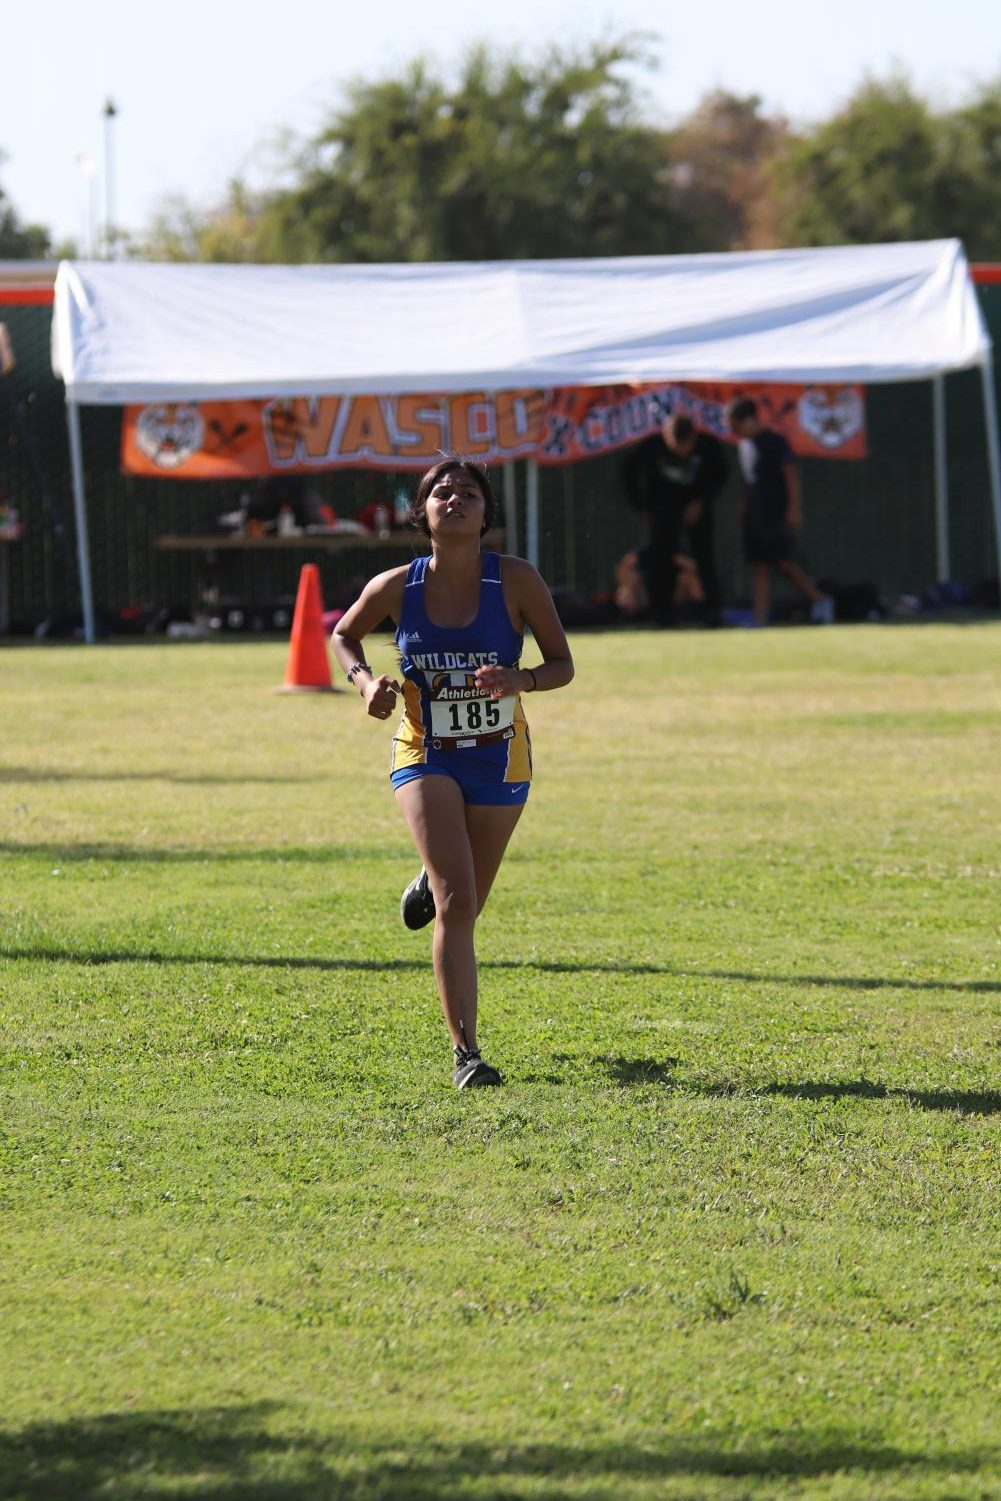 Junior, Kimberly Rivera in the final stretch of the Wasco Invitational.